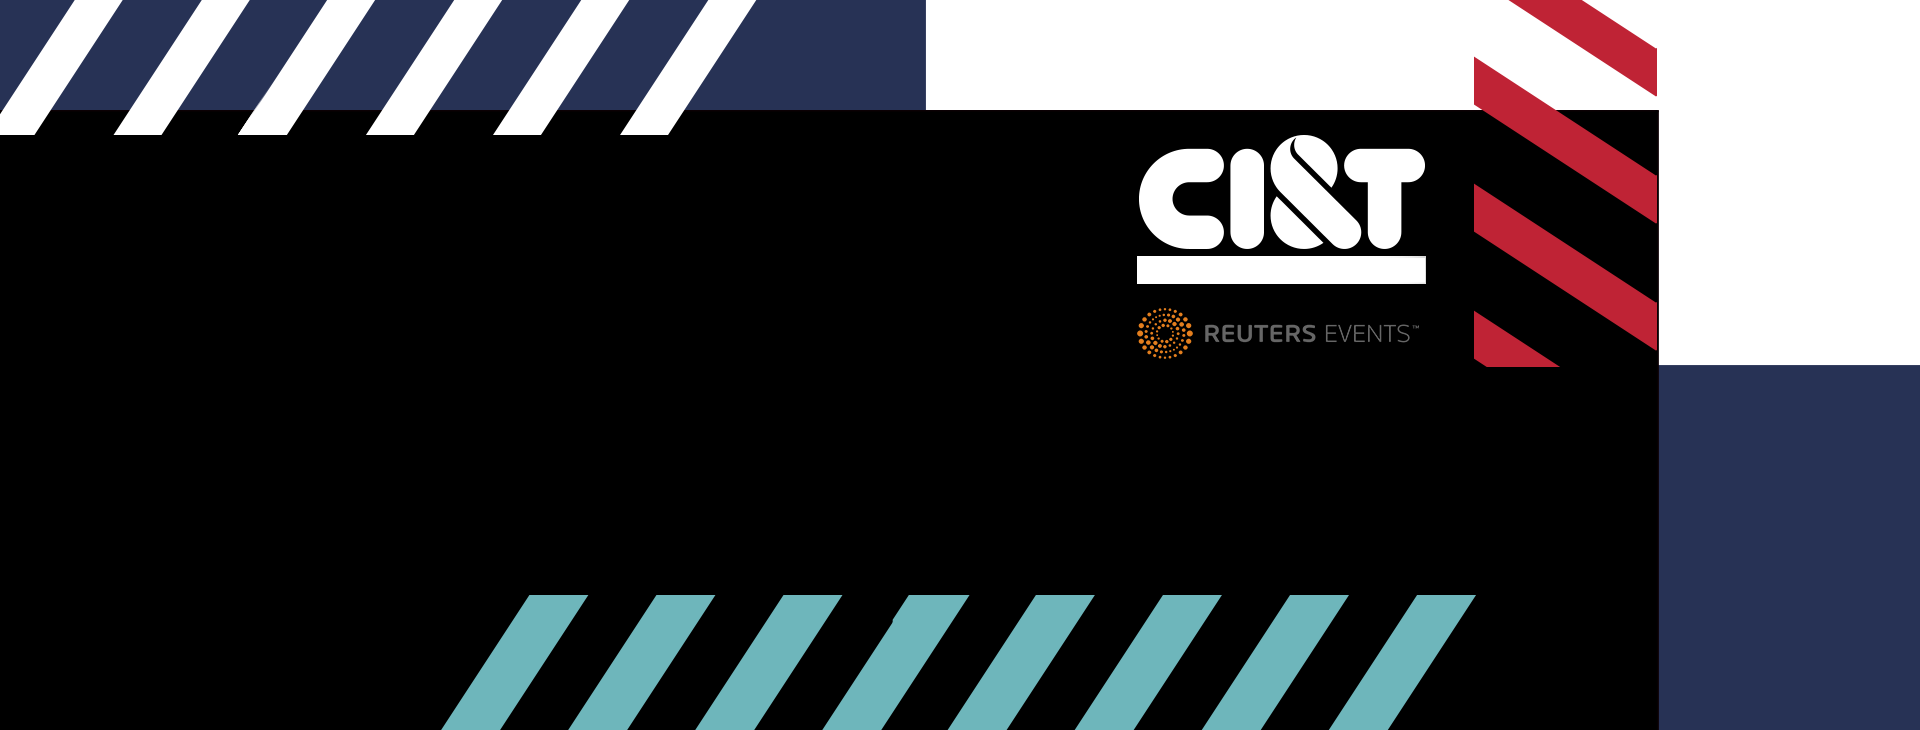 banner for Reuters event.2